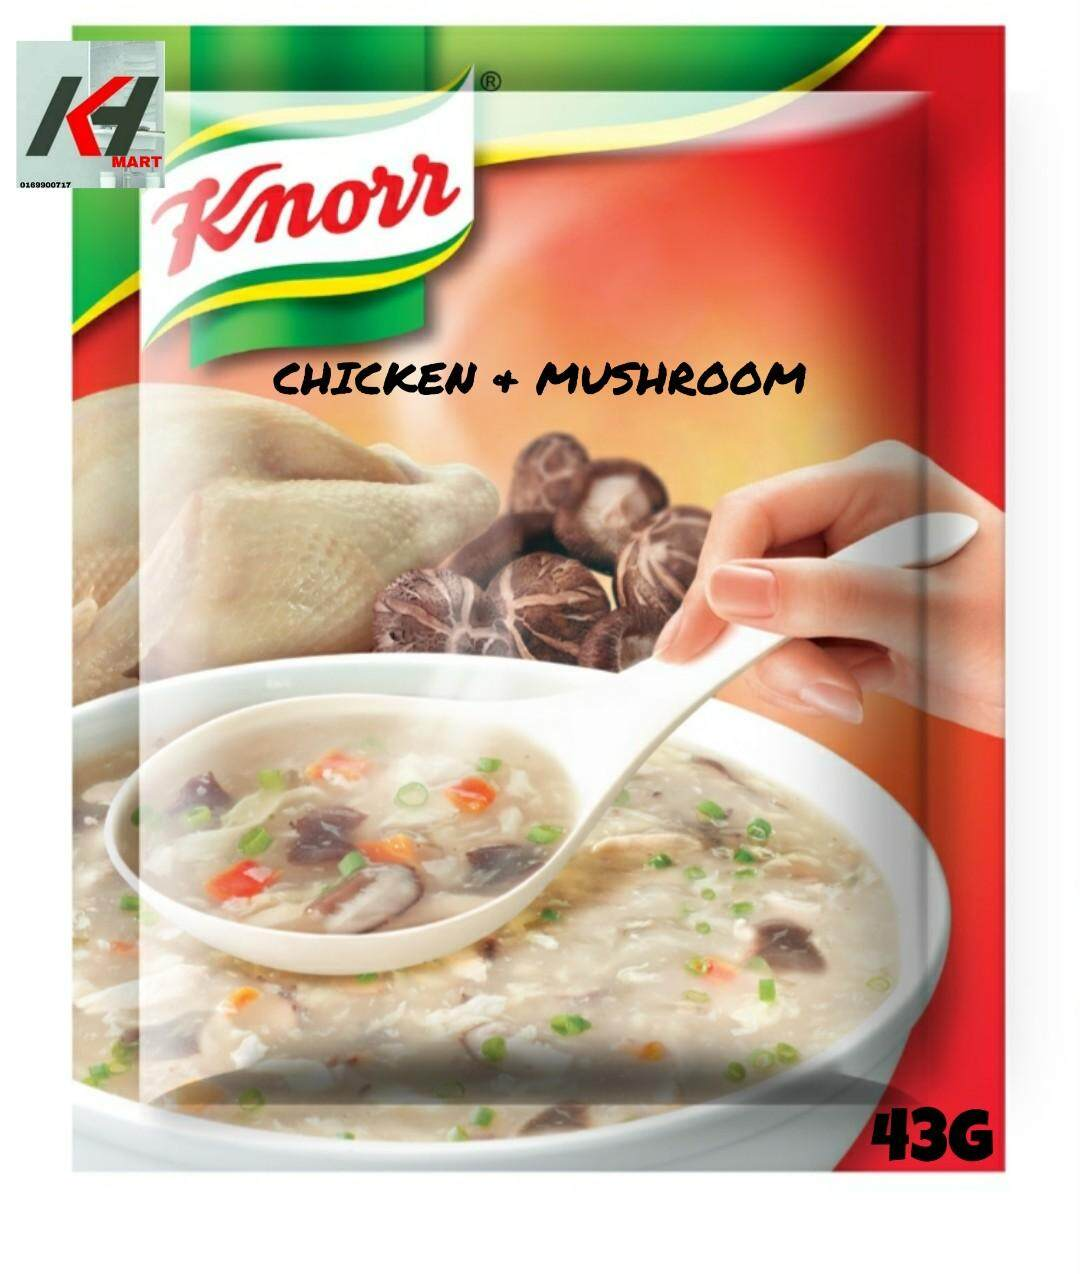 KNORR SOUP CHICKEN AND MUSHROOM 43G READY STOCK